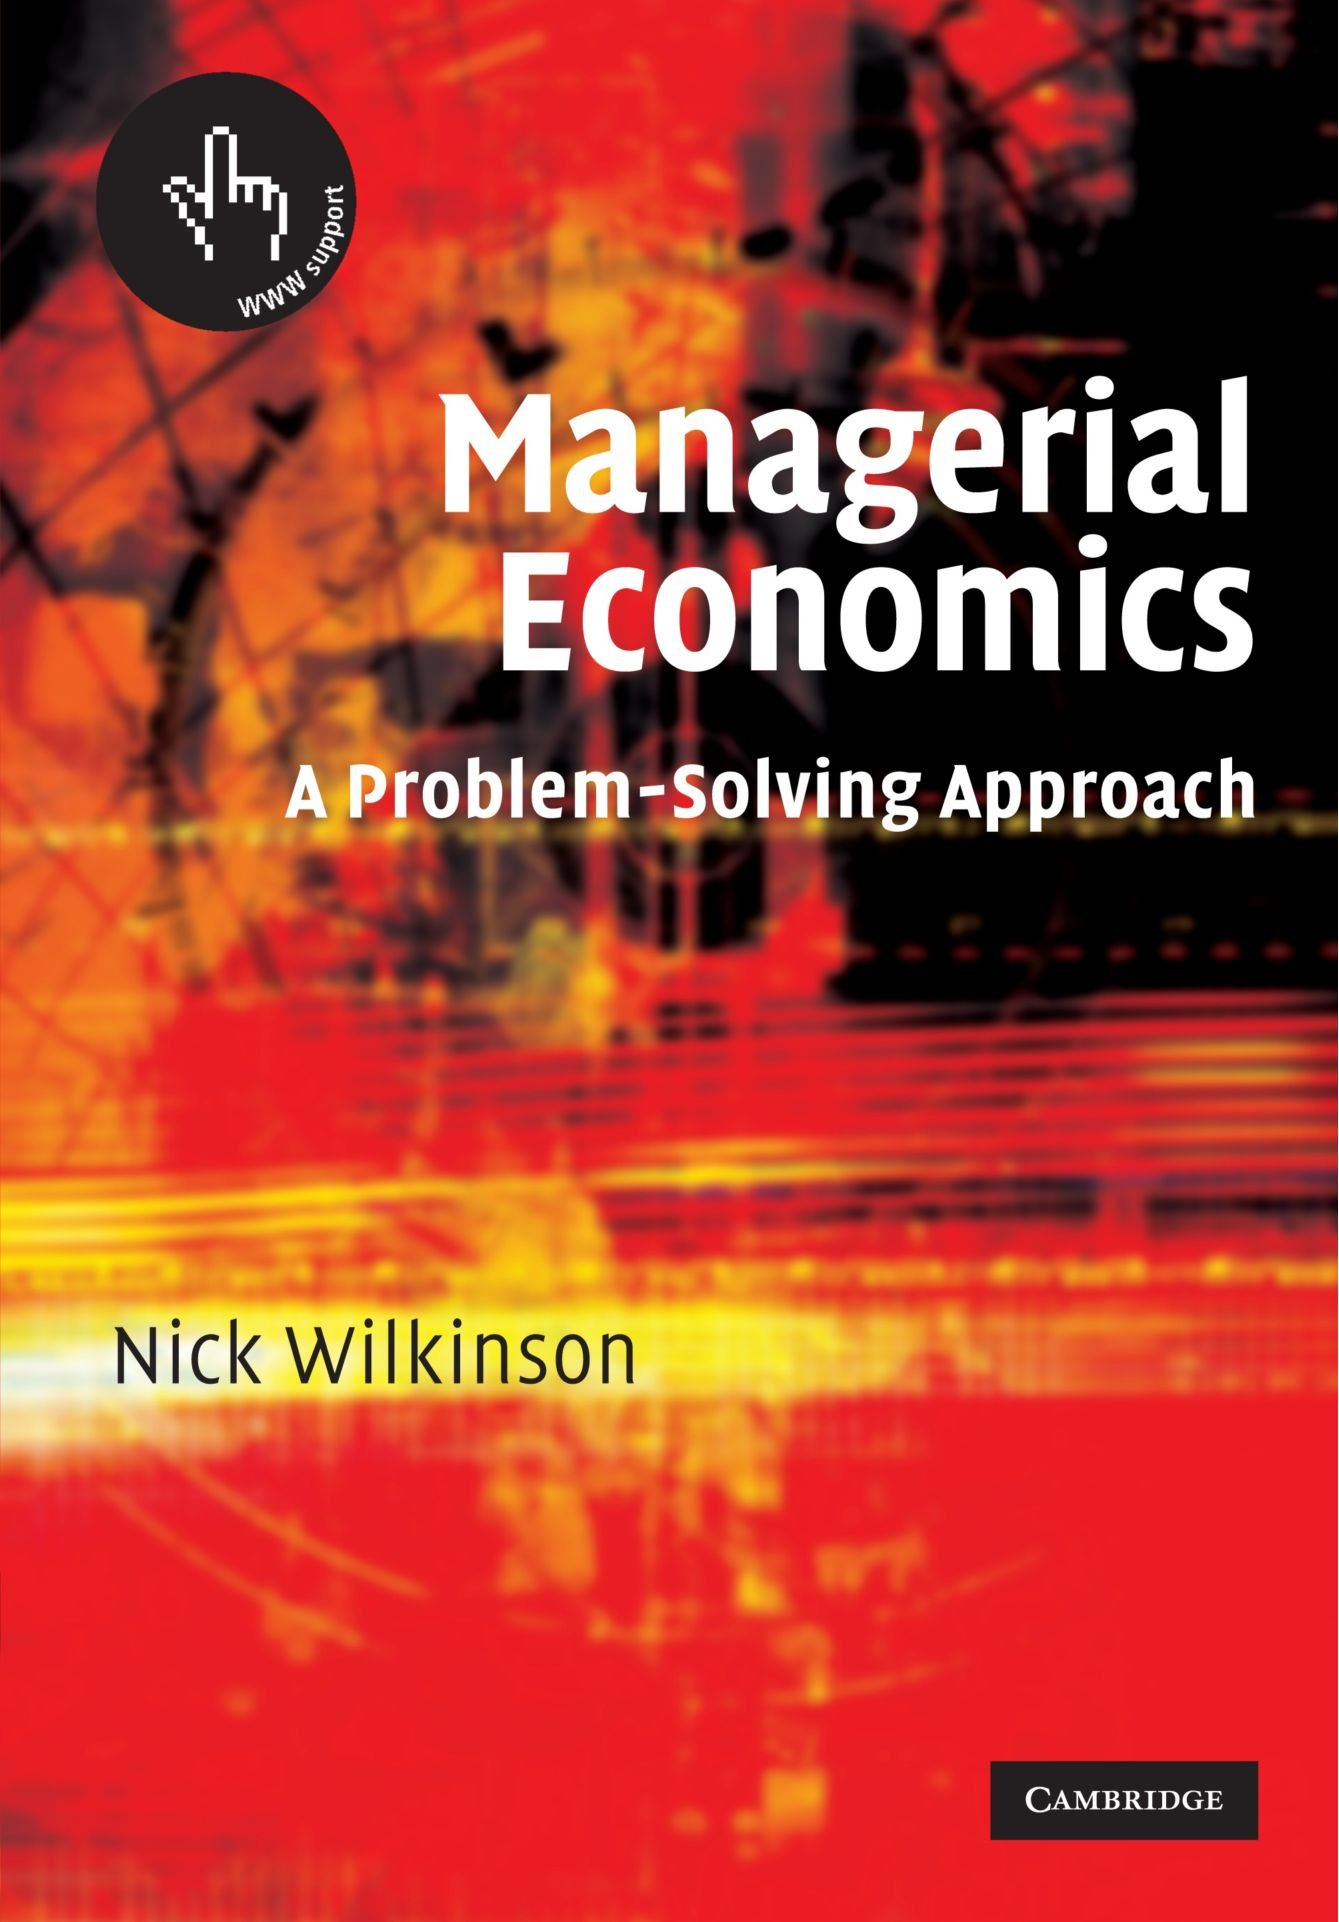 Managerial Economics: A Problem-Solving Approach by Brand: Cambridge University Press